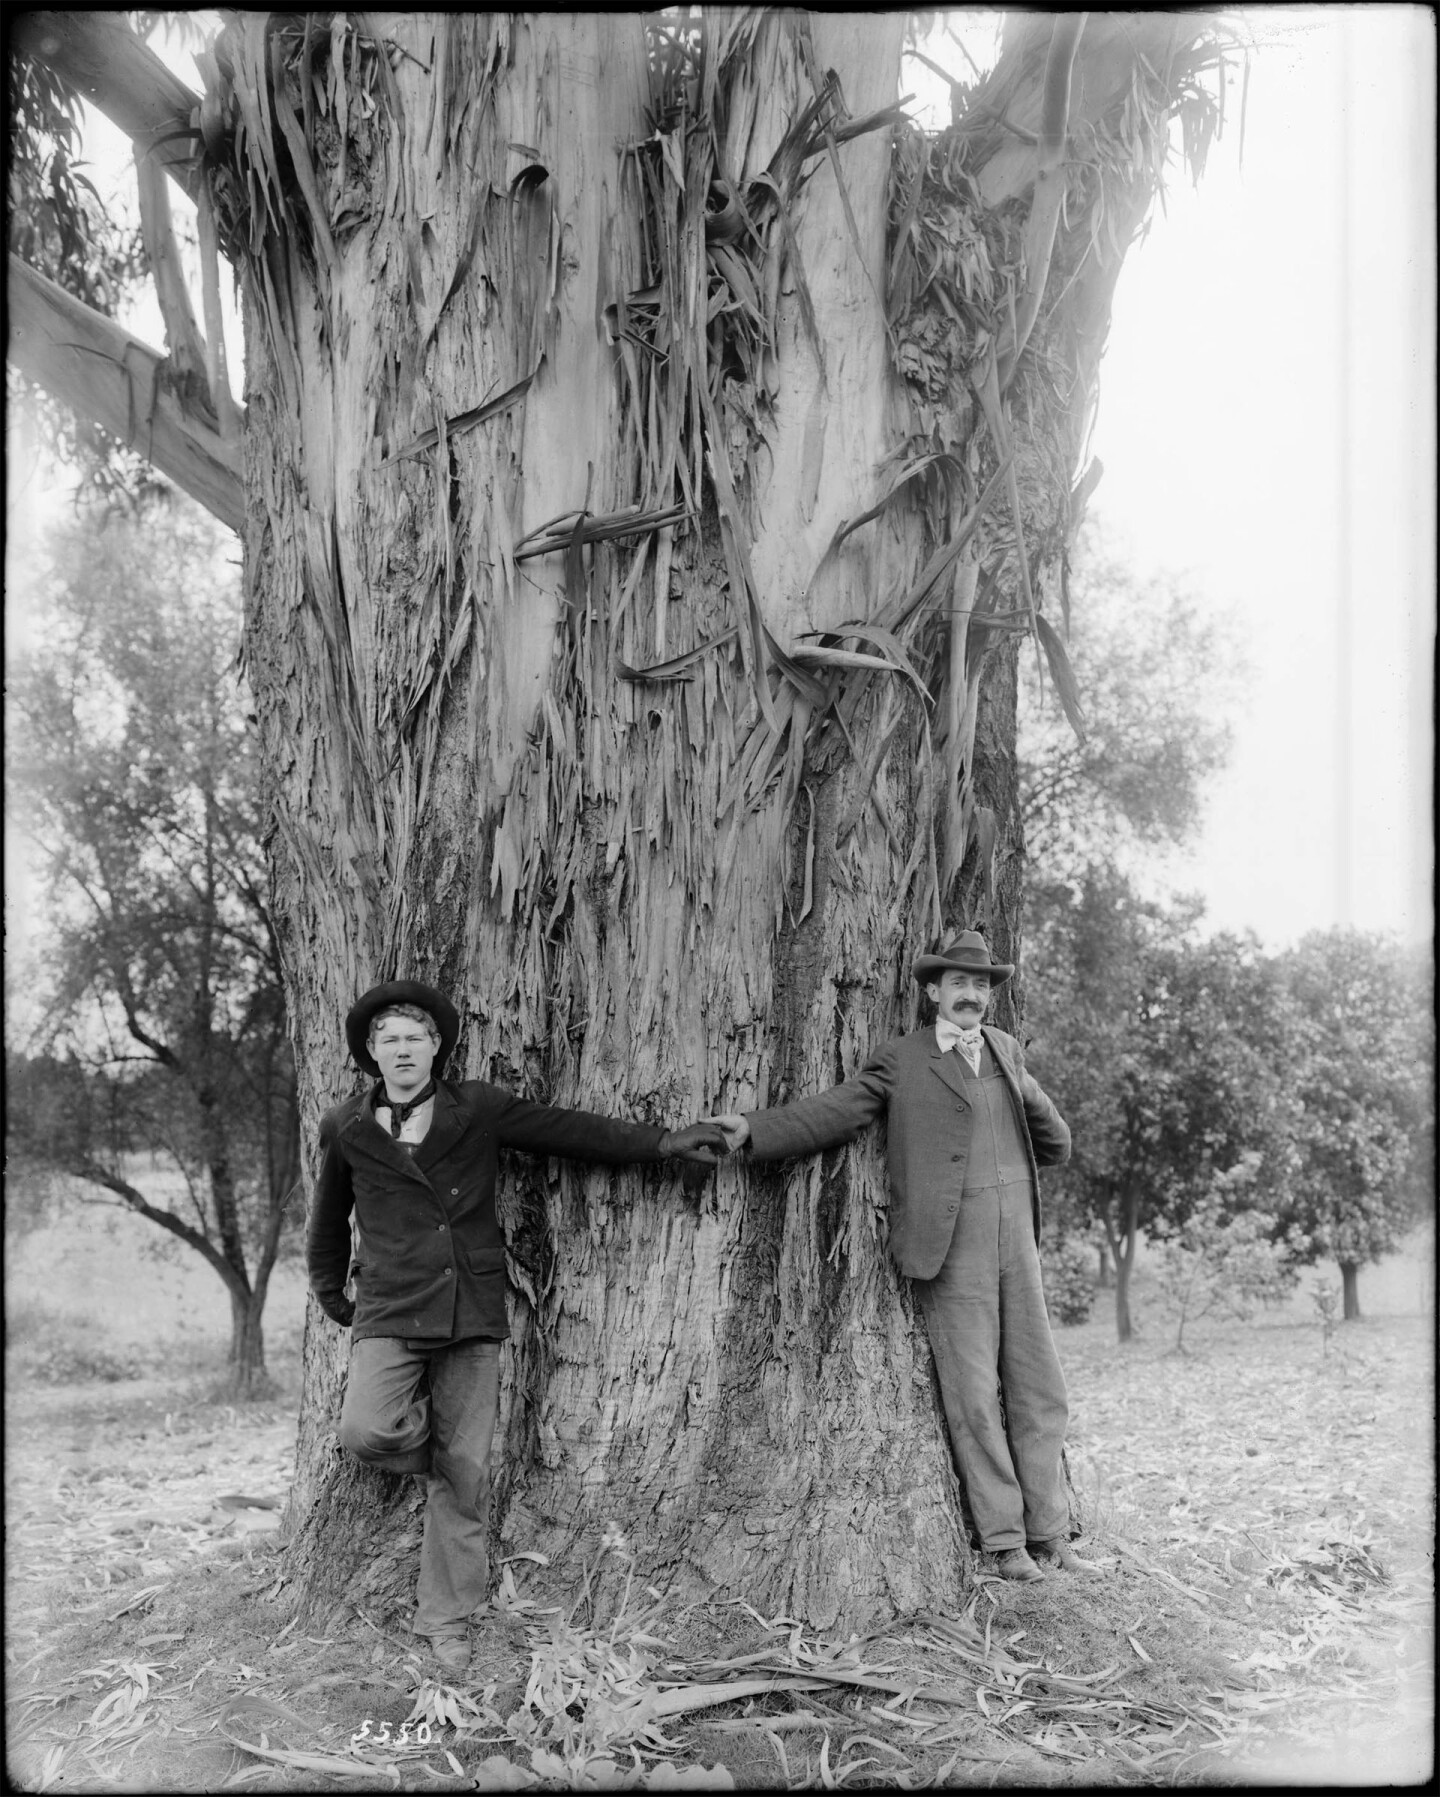 Two men demonstrate the girth of a 25-year-old eucalytpus tree on the L. J. Rose ranch in Rosemead, circa 1900. Courtesy of the Title Insurance and Trust / C.C. Pierce Photography Collection, USC Libraries.